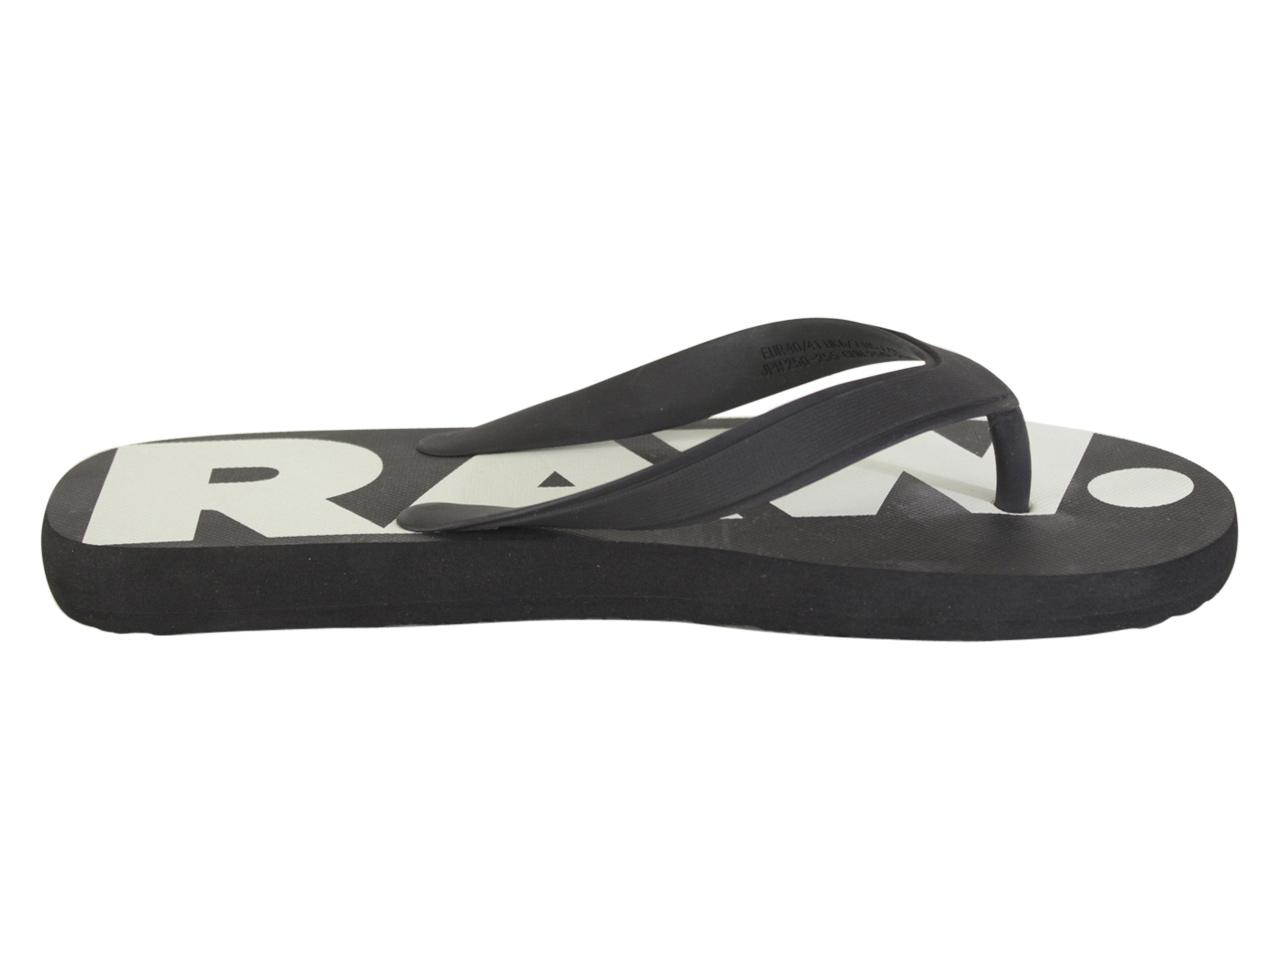 042b259c51c6 G-Star Raw Men s Dend Flip Flops Sandals Shoes by G-Star Raw